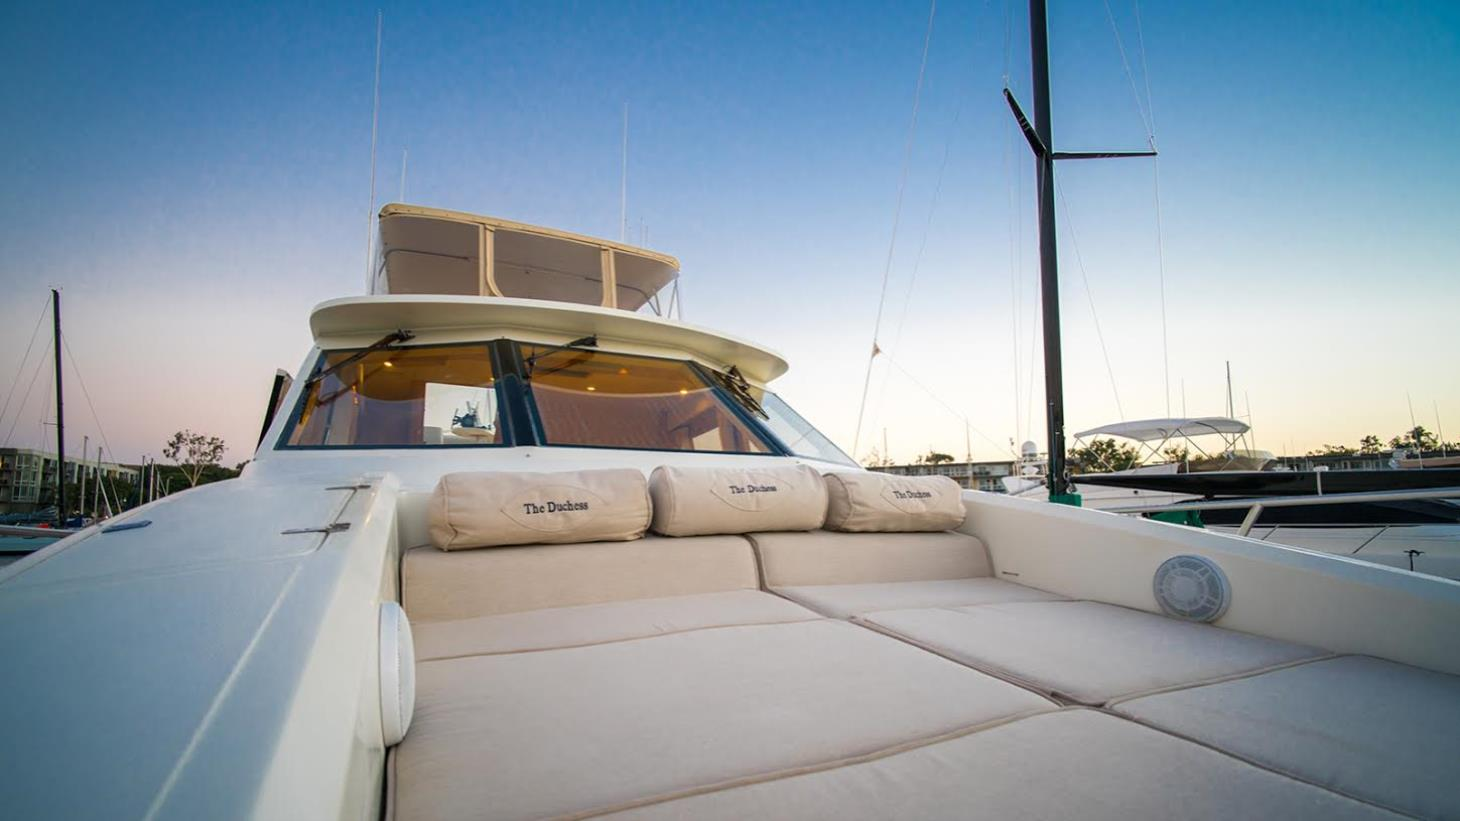 The Duchess Yacht Charter Service image 3